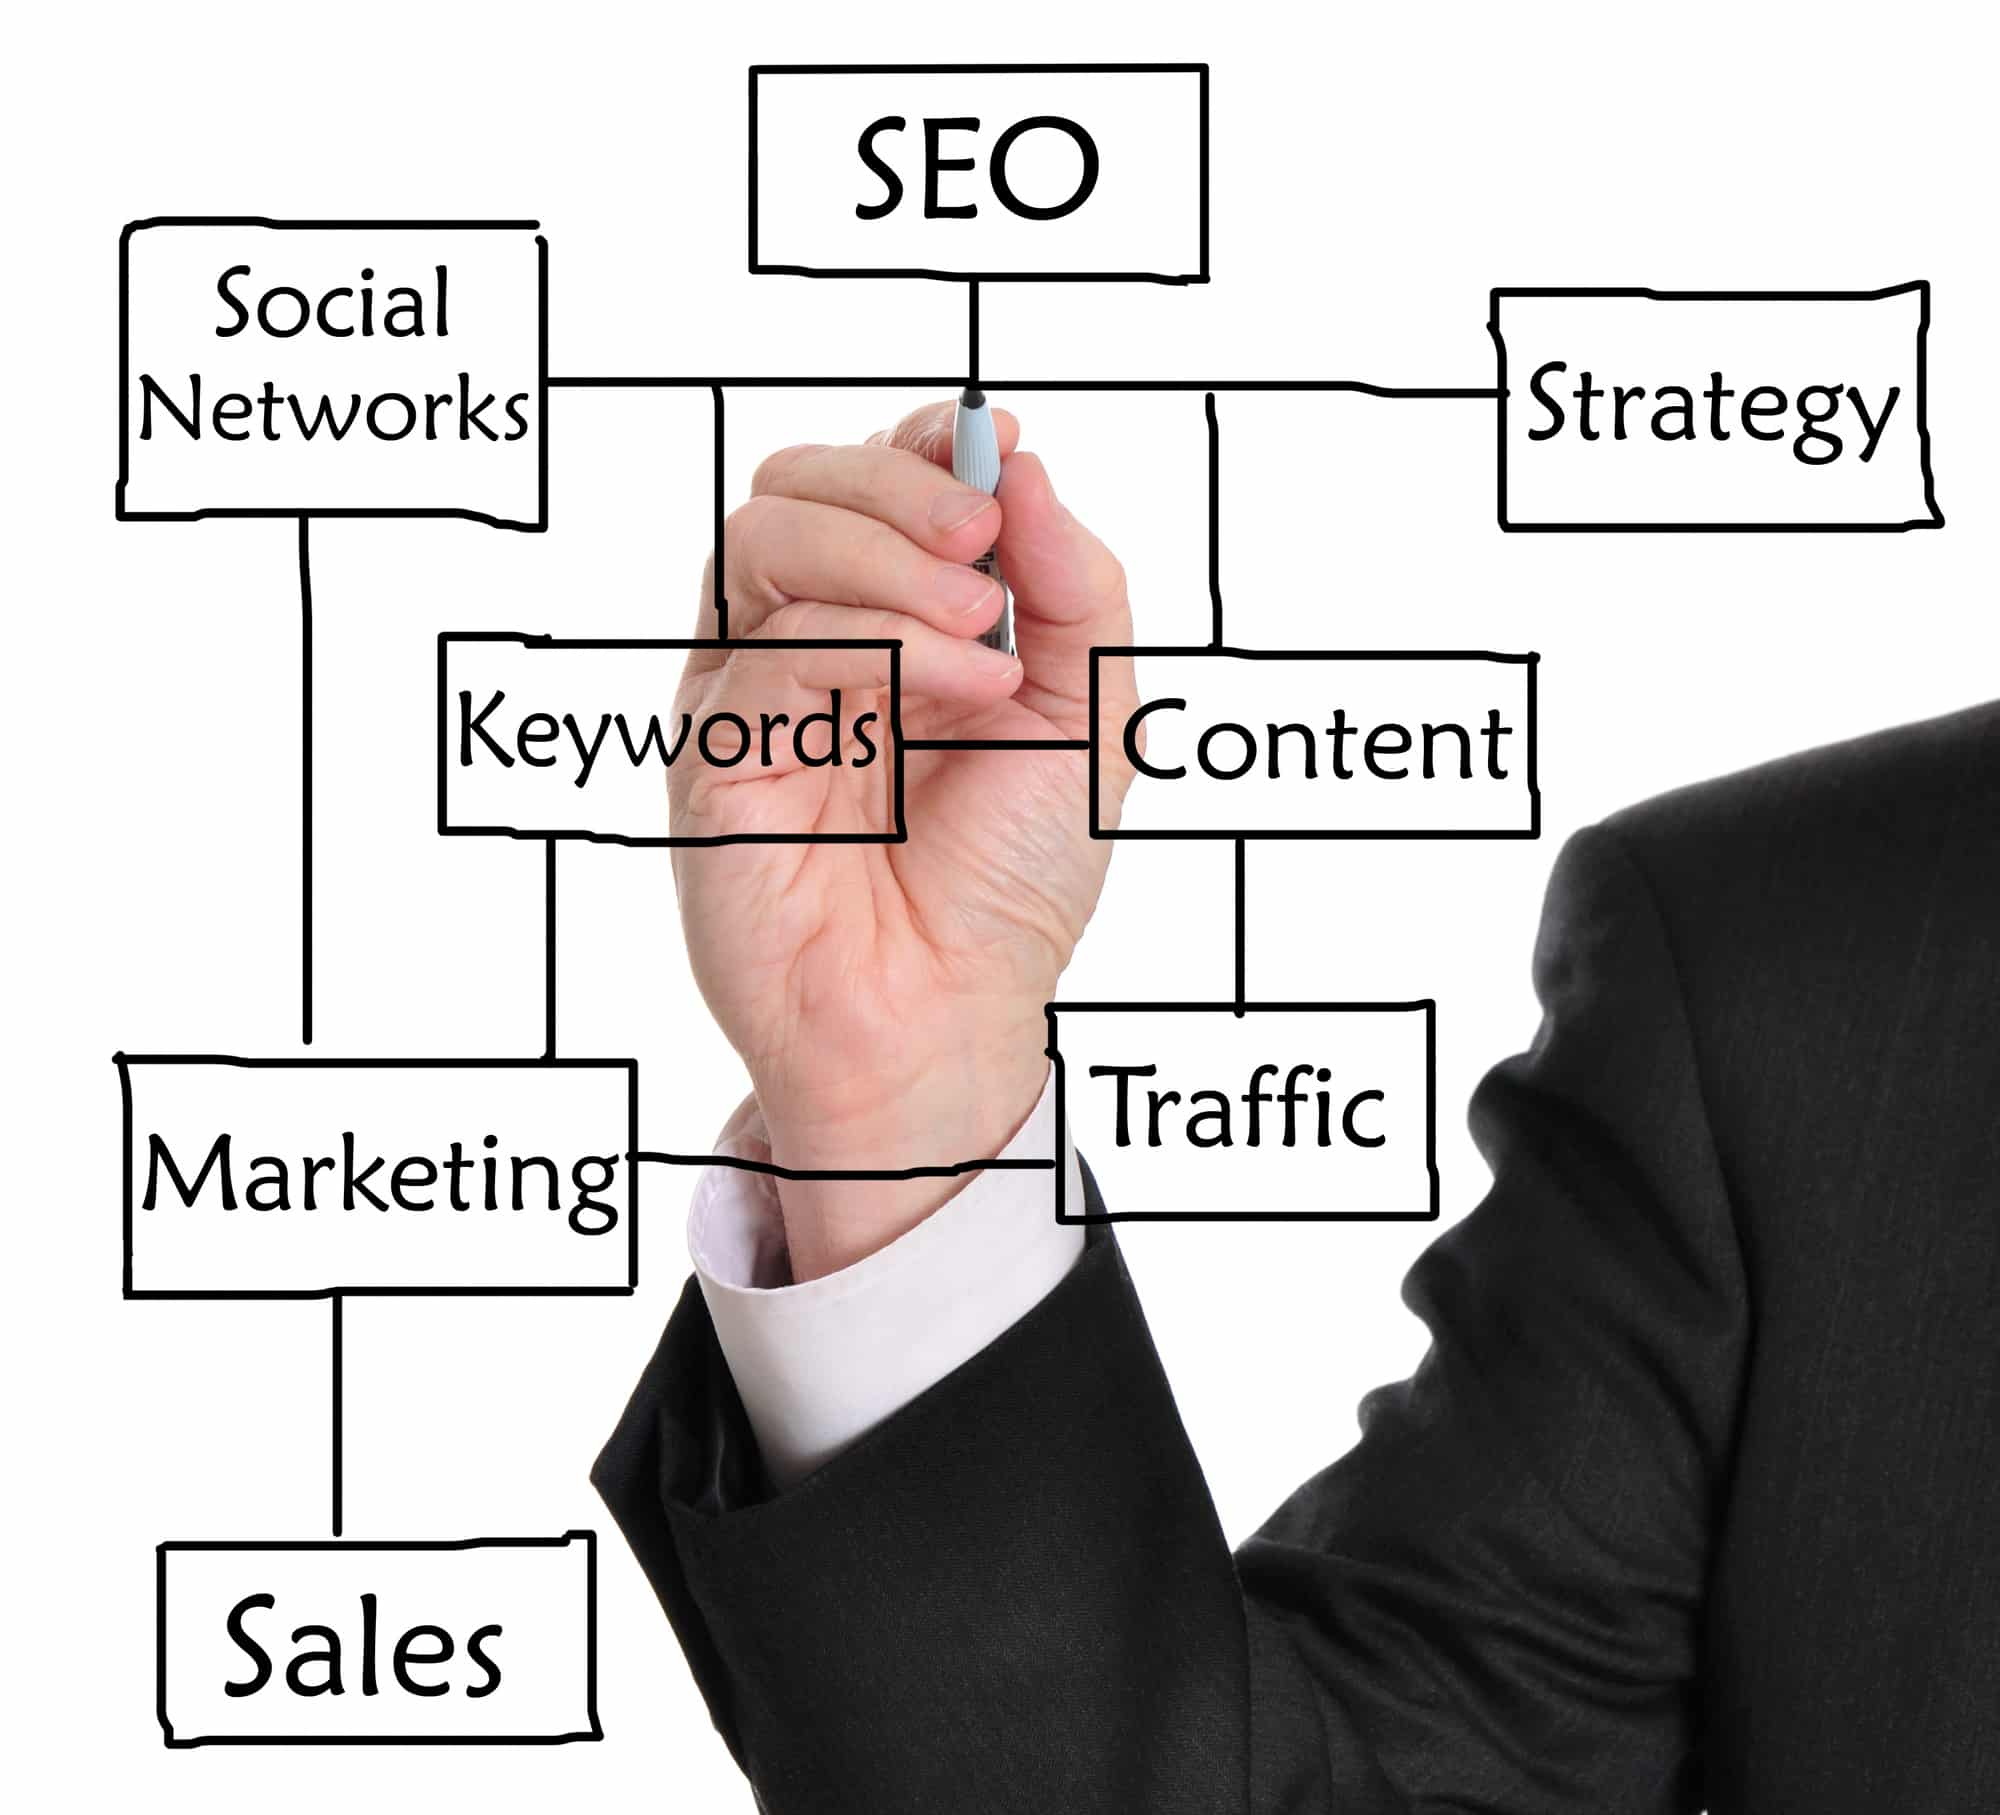 10 White Hat SEO Strategies That Work